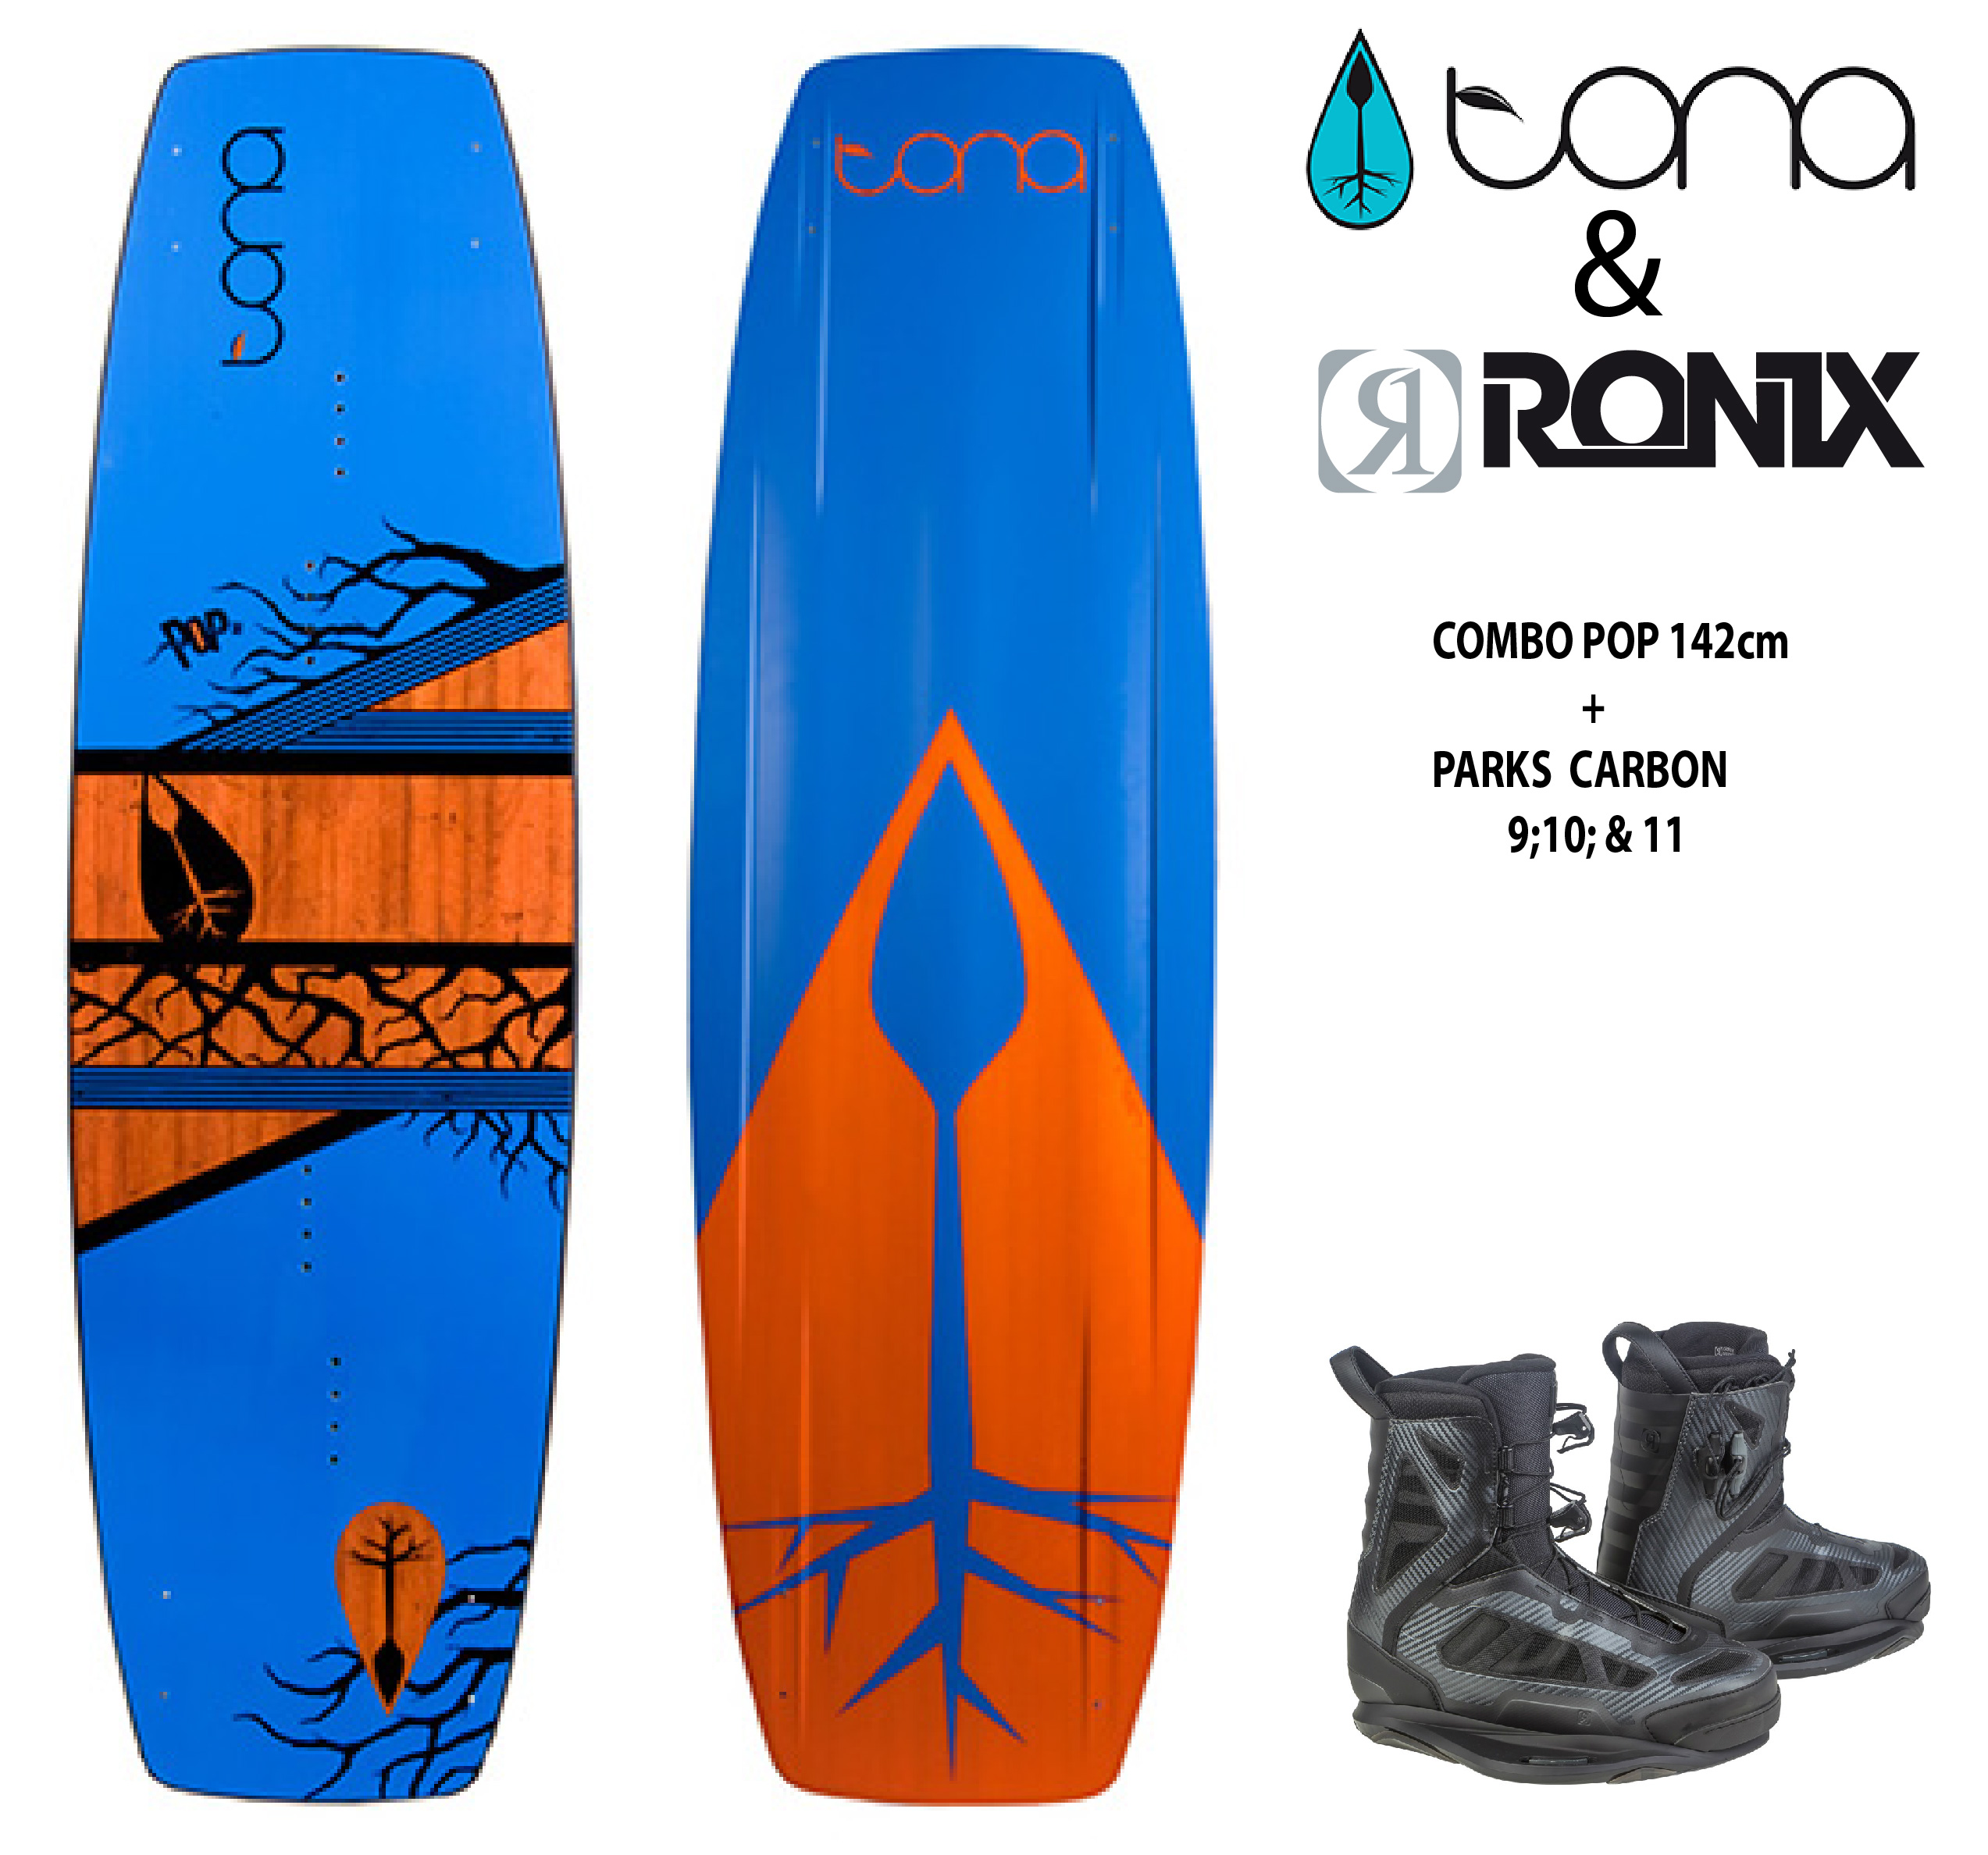 Combo Tona Pop 142cm c/Ronix Parks Chrome